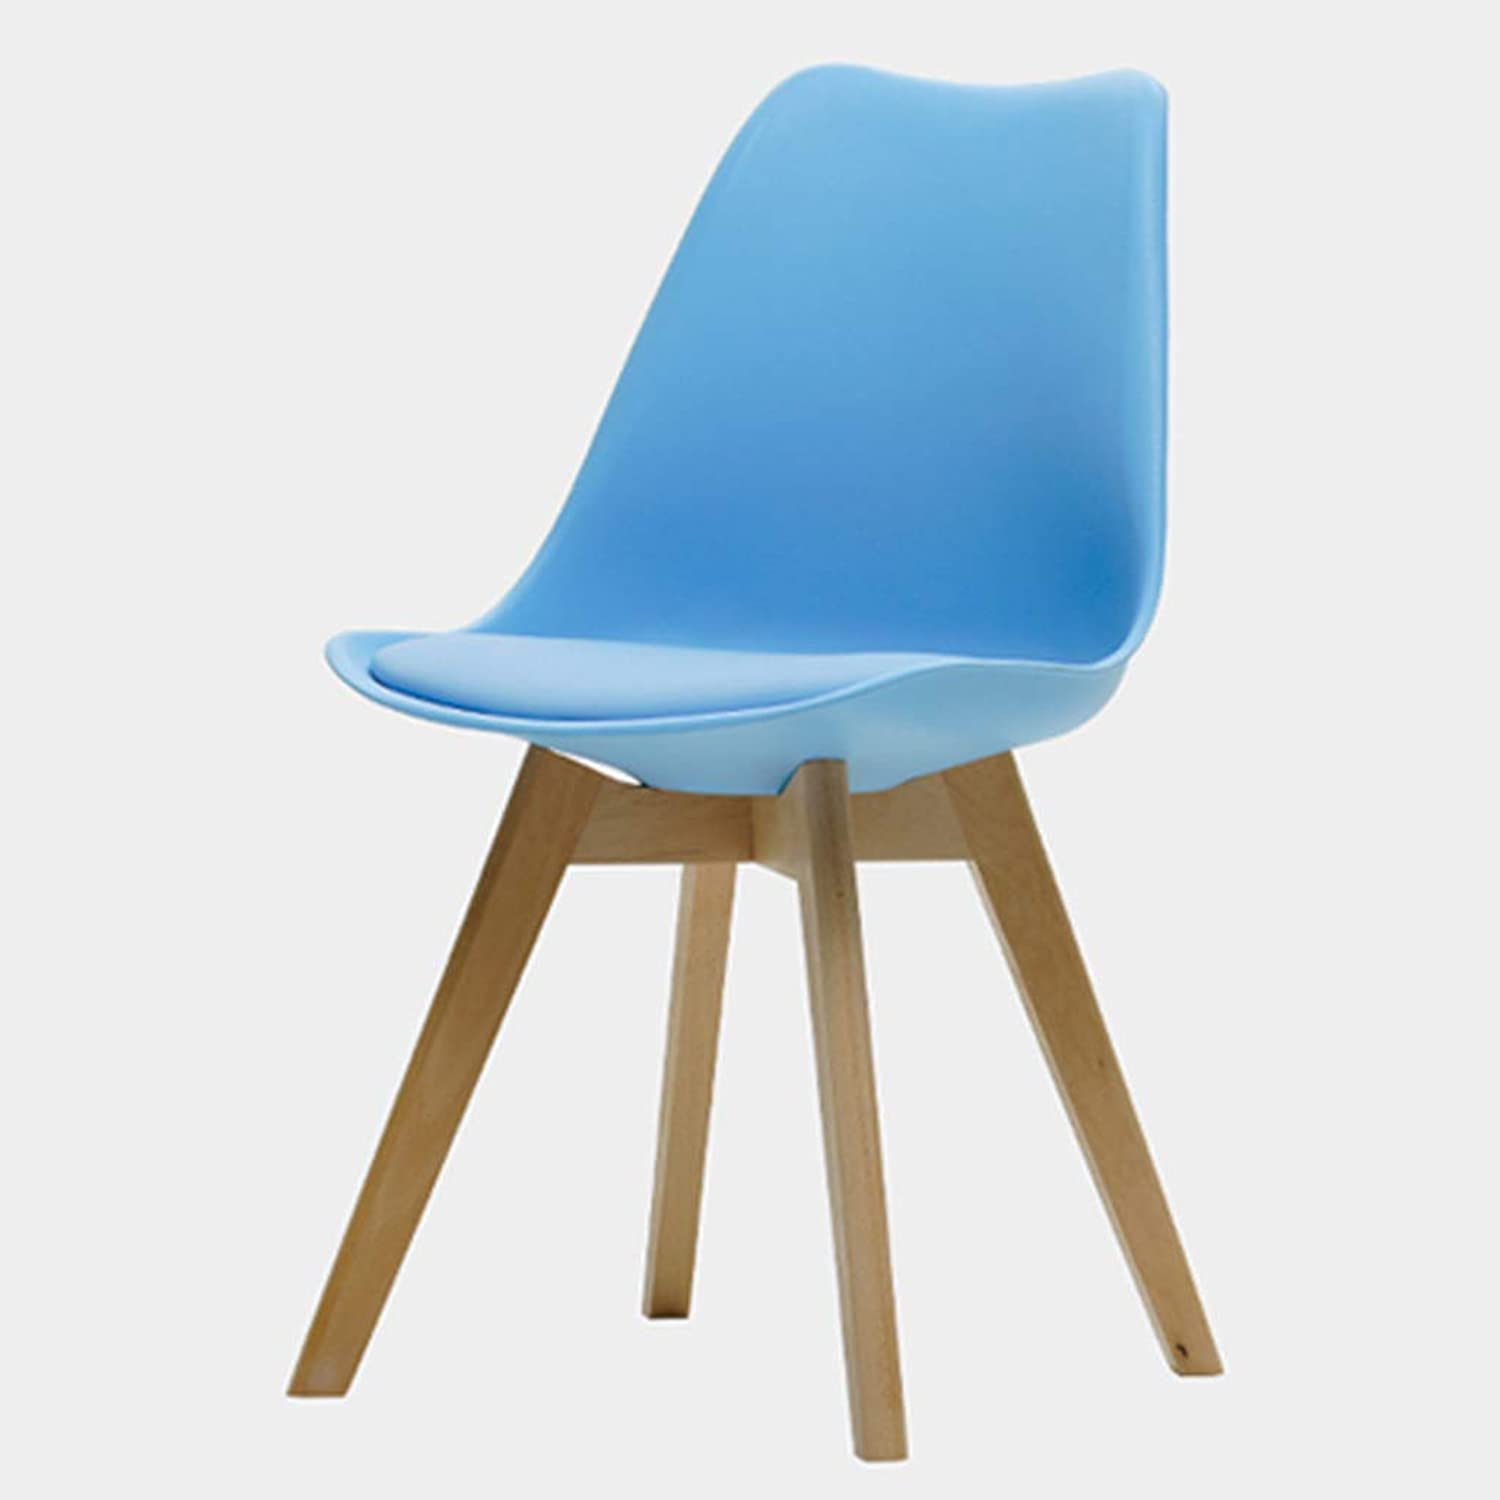 Solid Wood Dining Chair Backrest Dressing Table Stool Household European Style Chair Environmental Predection Multifunction Armchair Nordic Desk Chair Cafe Leisure Chair,bluee